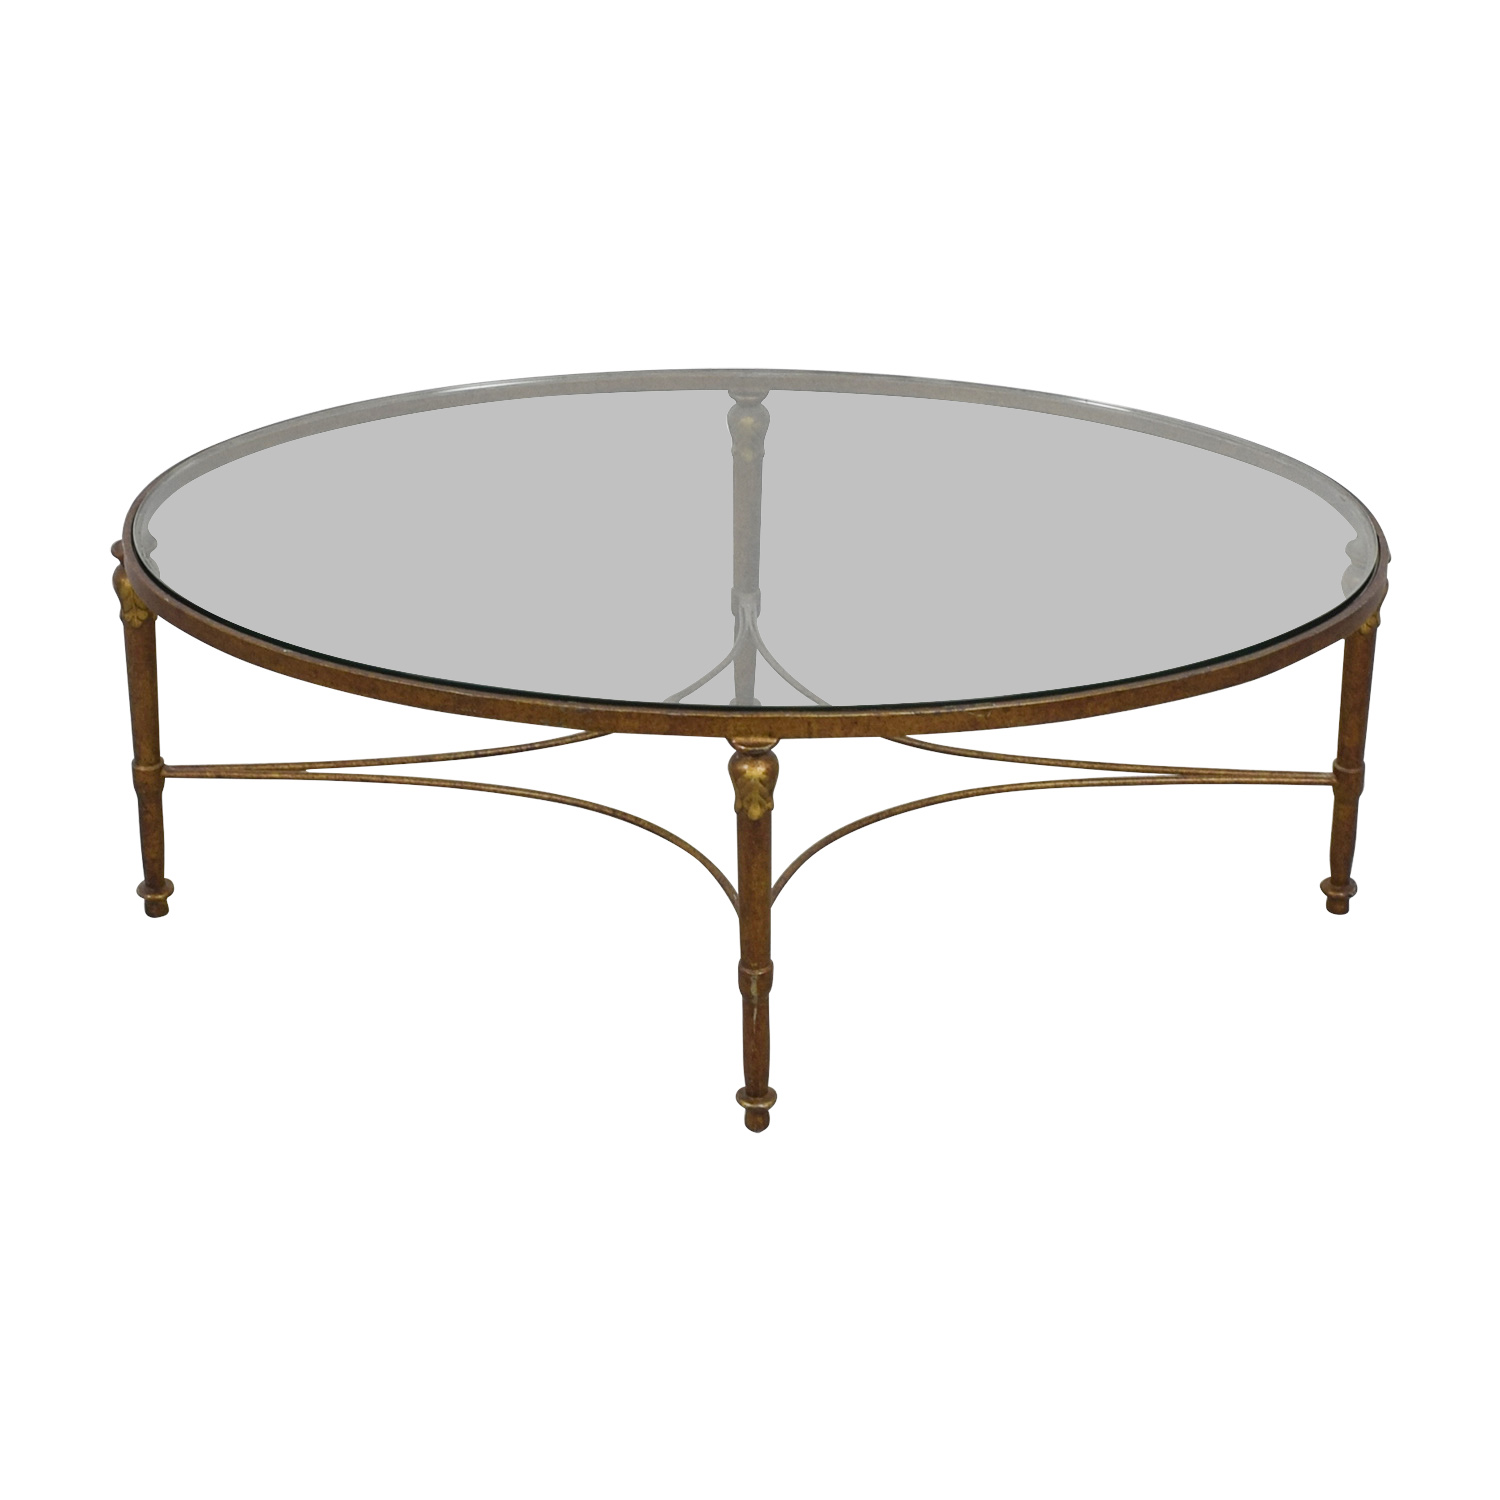 Oval Wrought Iron Framed Glass Table for sale